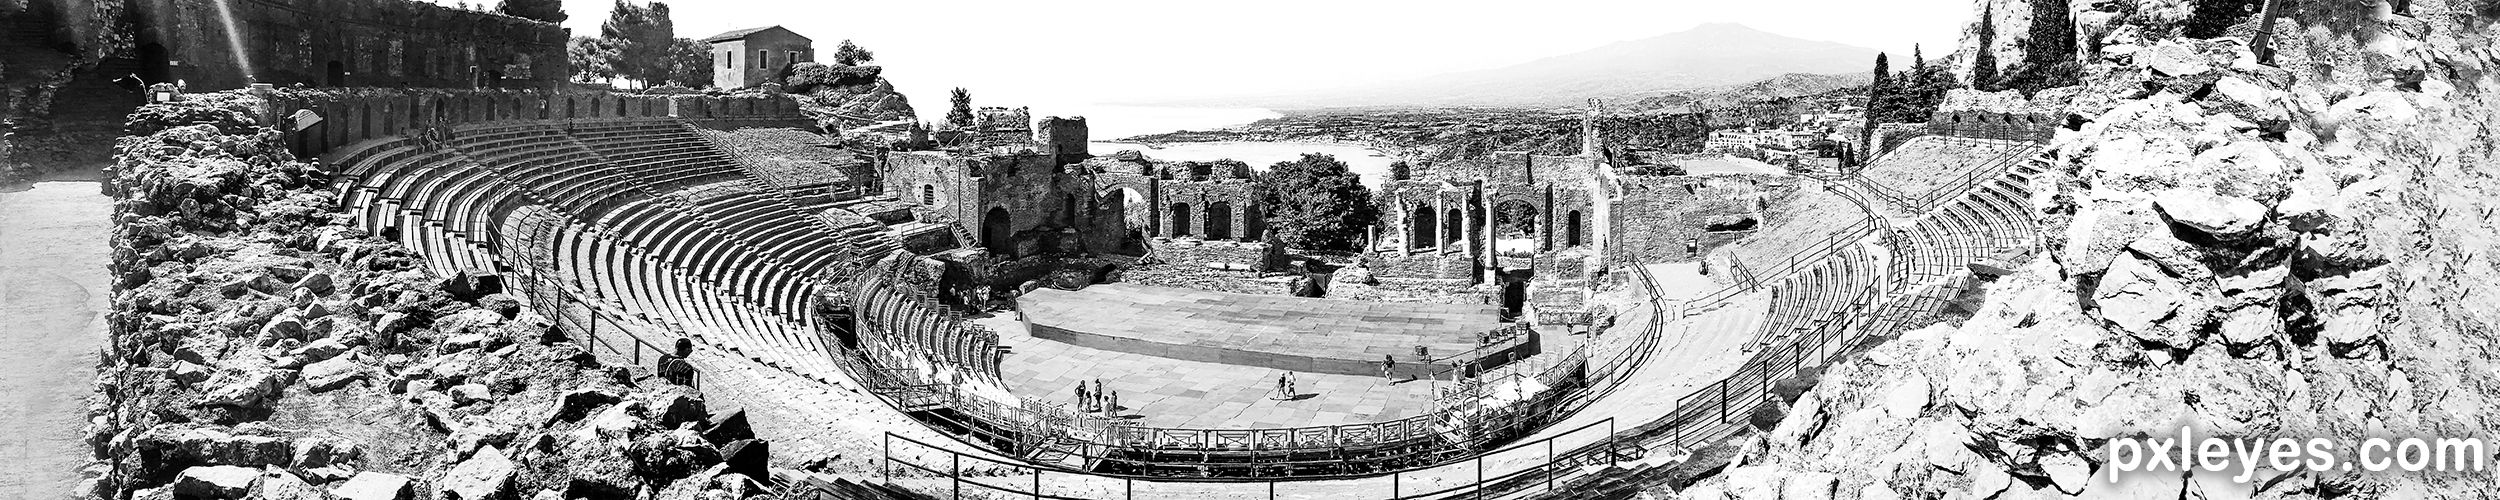 ancient greek theatre picture by heathcliffe for bw panorama